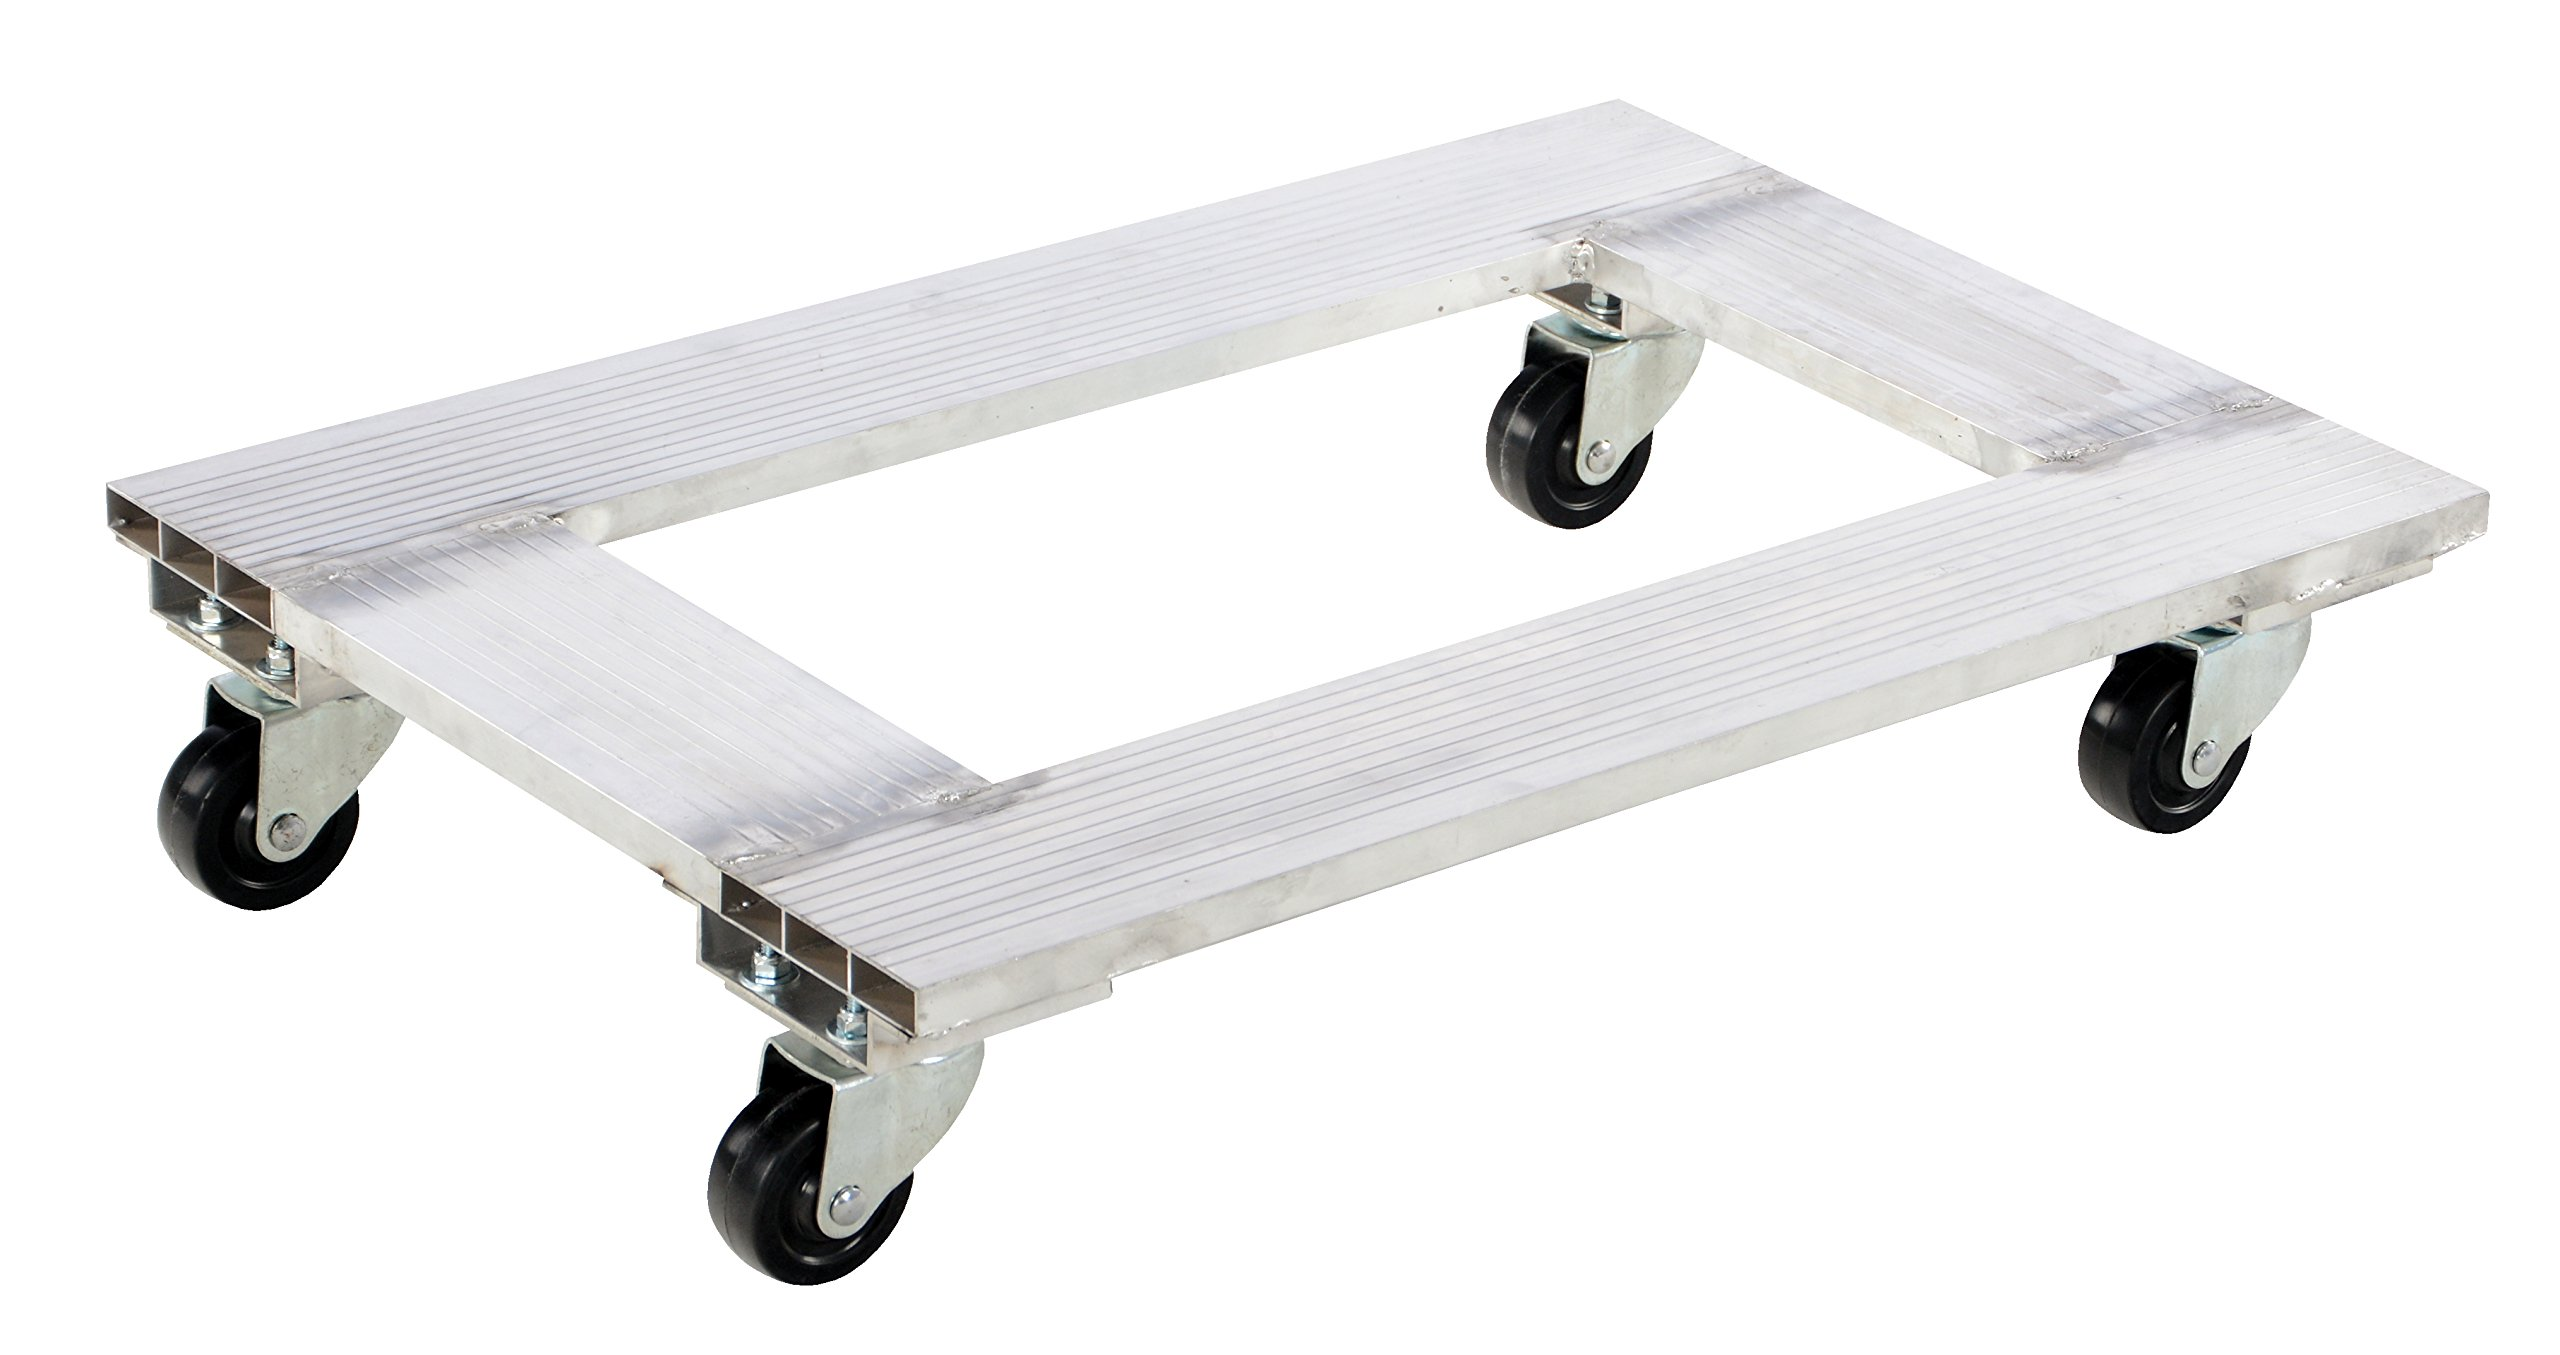 Vestil ACP-2130-9 Aluminum Channel Dolly with Hard Rubber Caster, 900 lbs Capacity, 30'' Length x 21'' Width x 6'' Height Deck